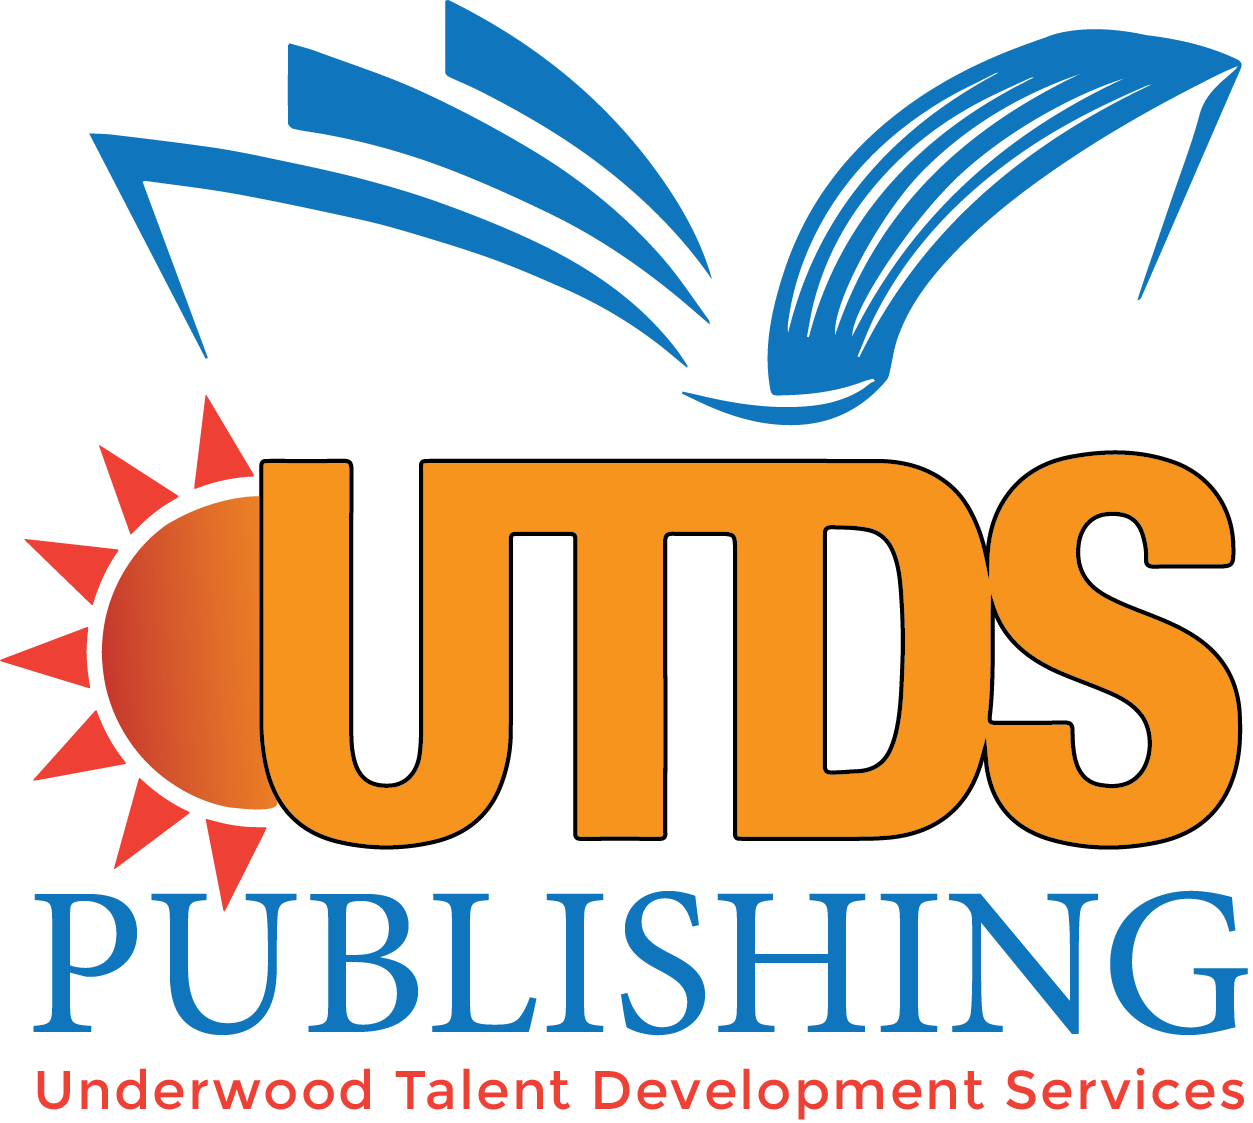 Underwood Talent Development Services